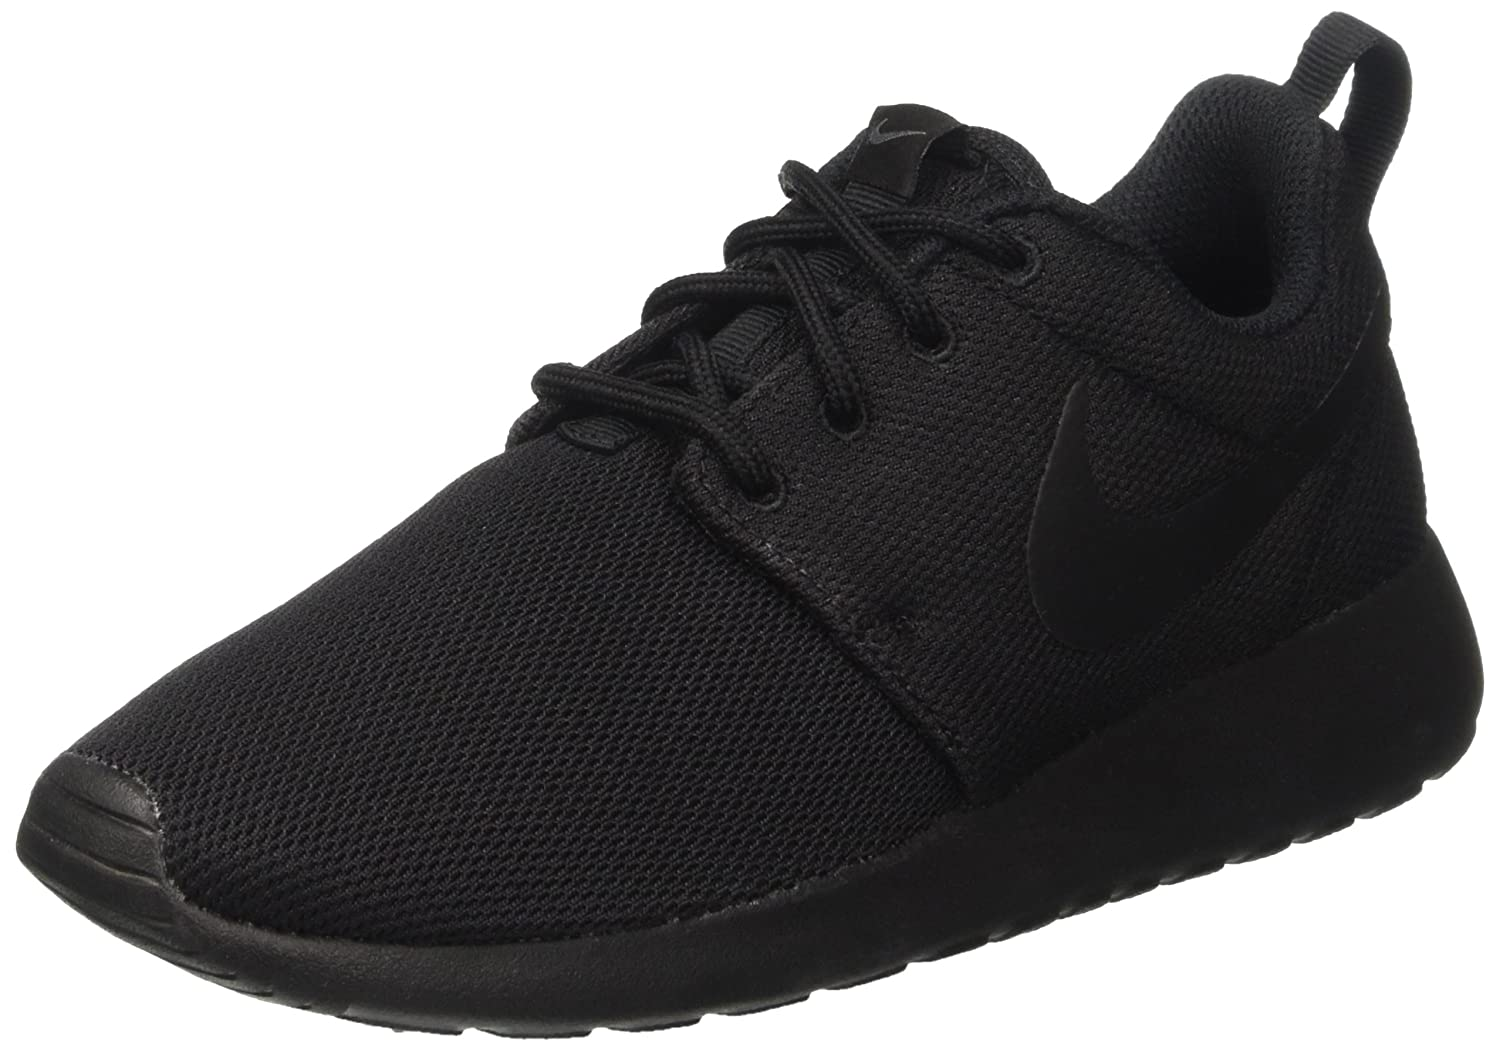 NIKE Women's Roshe One B(M) Running Shoe B01INWZ2AO 11 B(M) One US|Black/White-Dark Grey 043a76